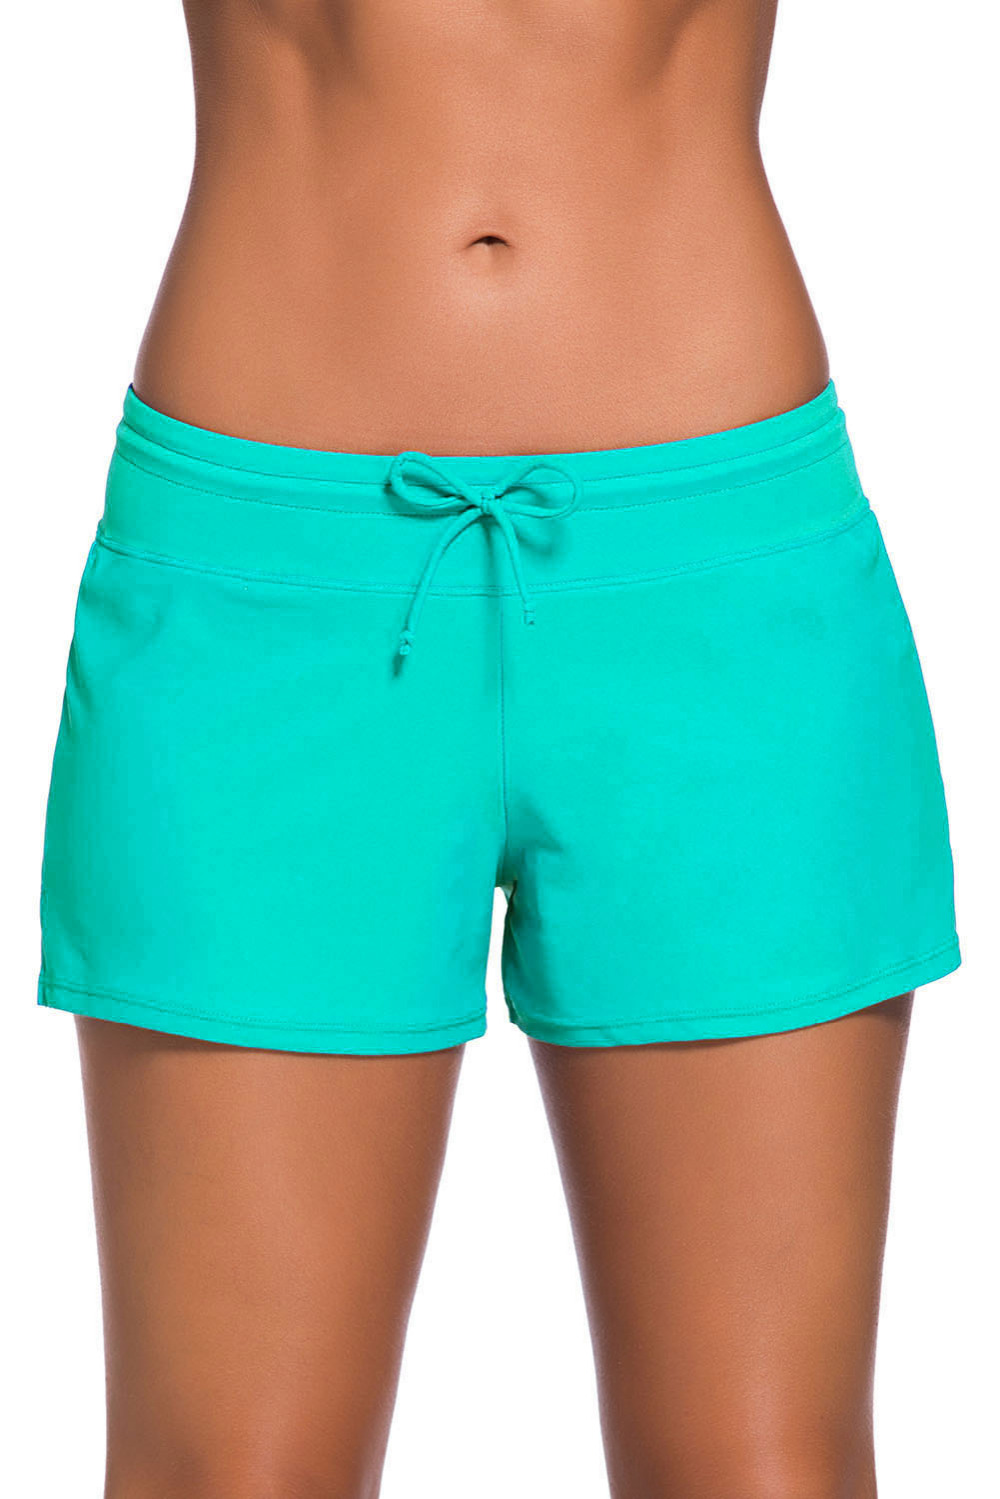 Swimwear New 2018 Women 39 s Shorts Boardshorts Women Beach sports Trousers Short Breathable Womens Clothes Bottoms 41977 in Bikinis Set from Sports amp Entertainment